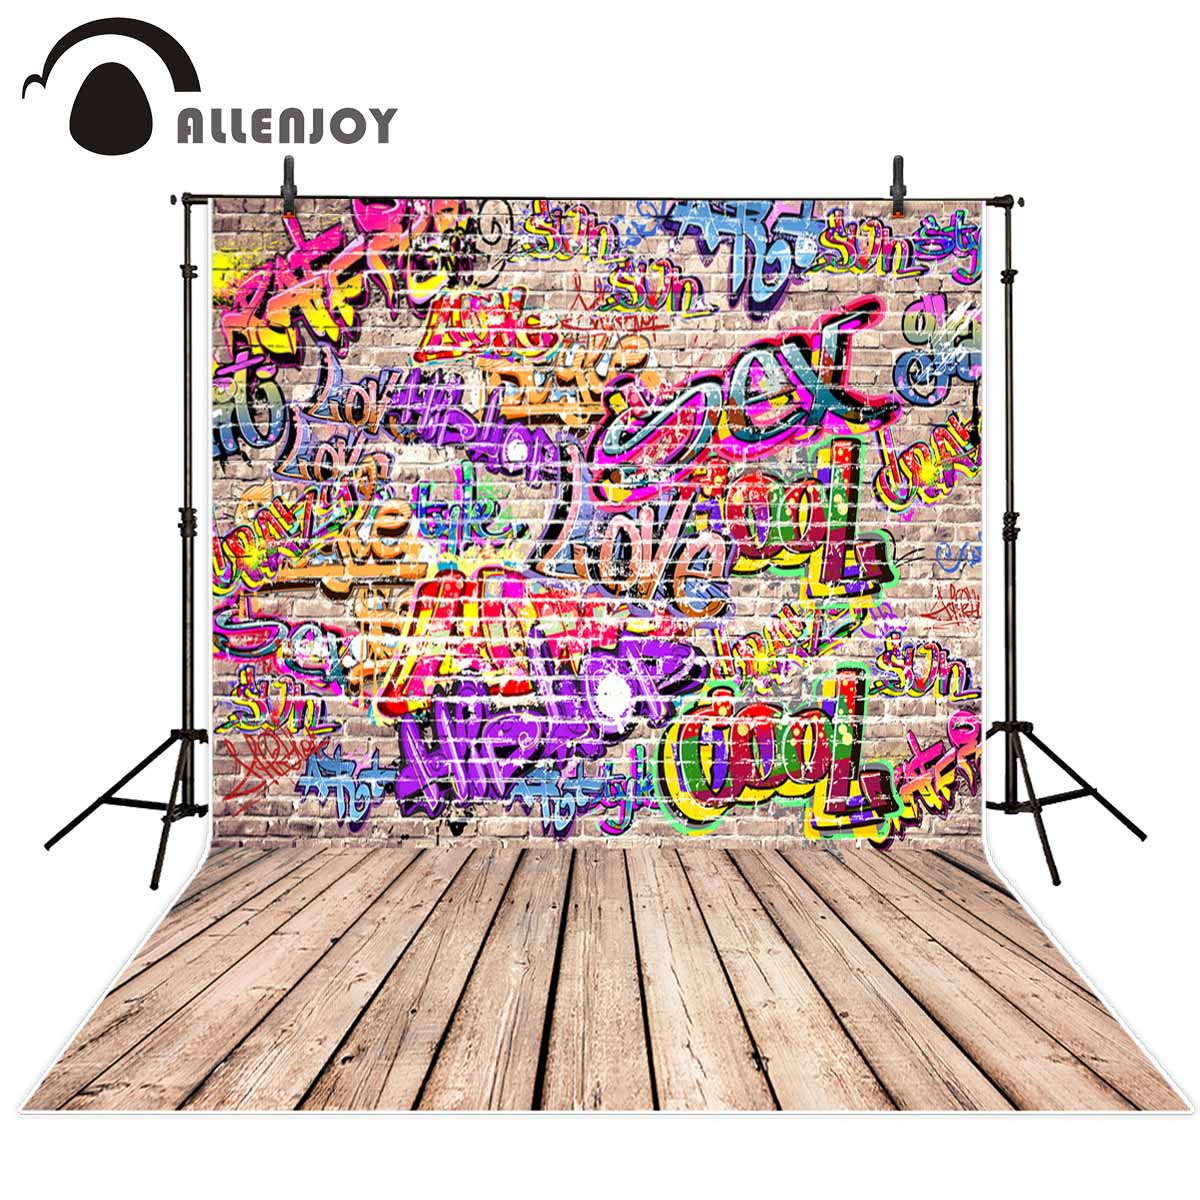 Allenjoy photography backdrops graffiti Brick wall colorful cool wood floor background for photographic studio Backgrounds kate wood photography photography white brick wall backdrops gray wood floor baby backgrounds for photo shoot print cm 5674